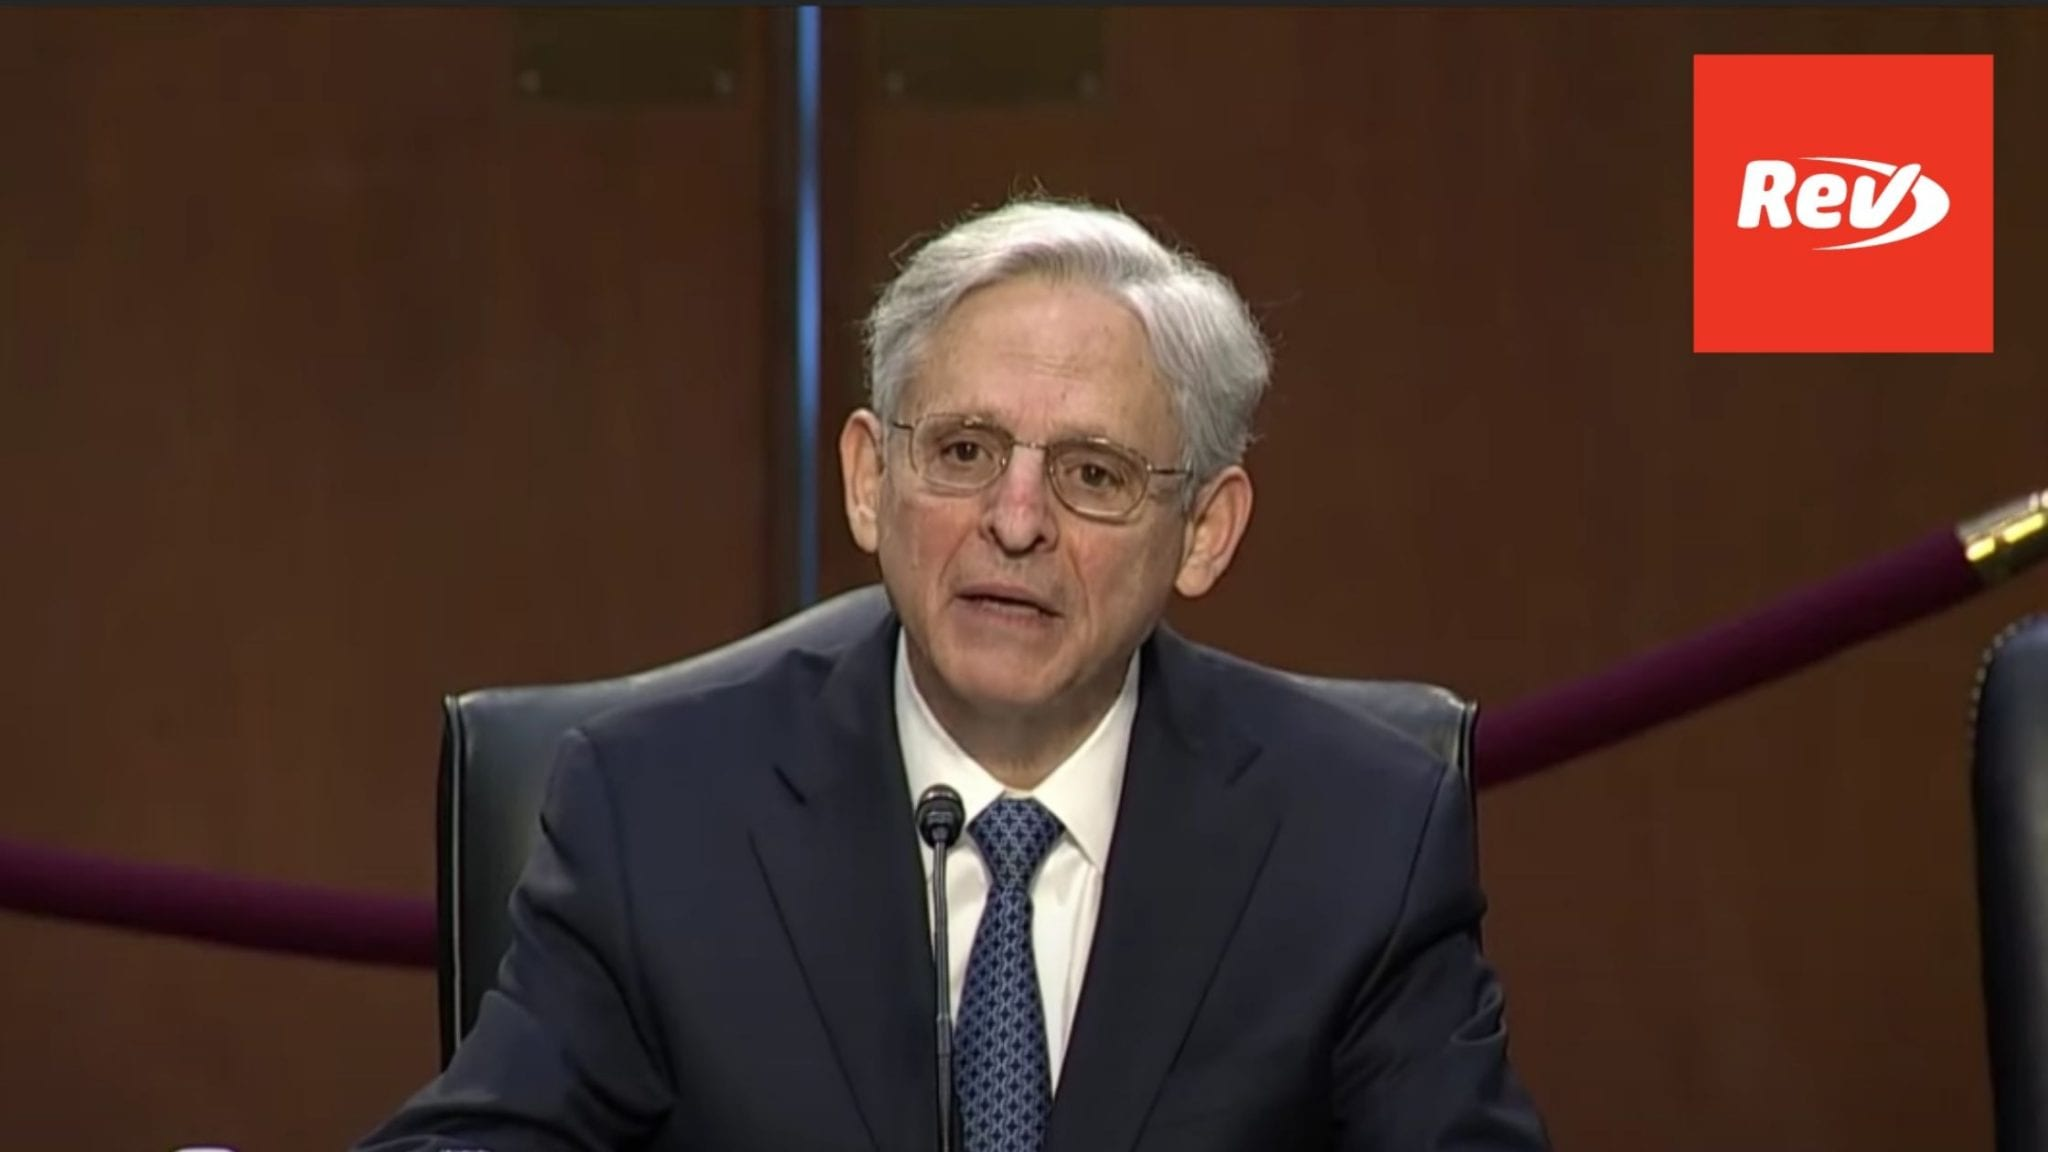 Merrick Garland Opening Statement Transcript: Confirmation Hearing for Attorney General